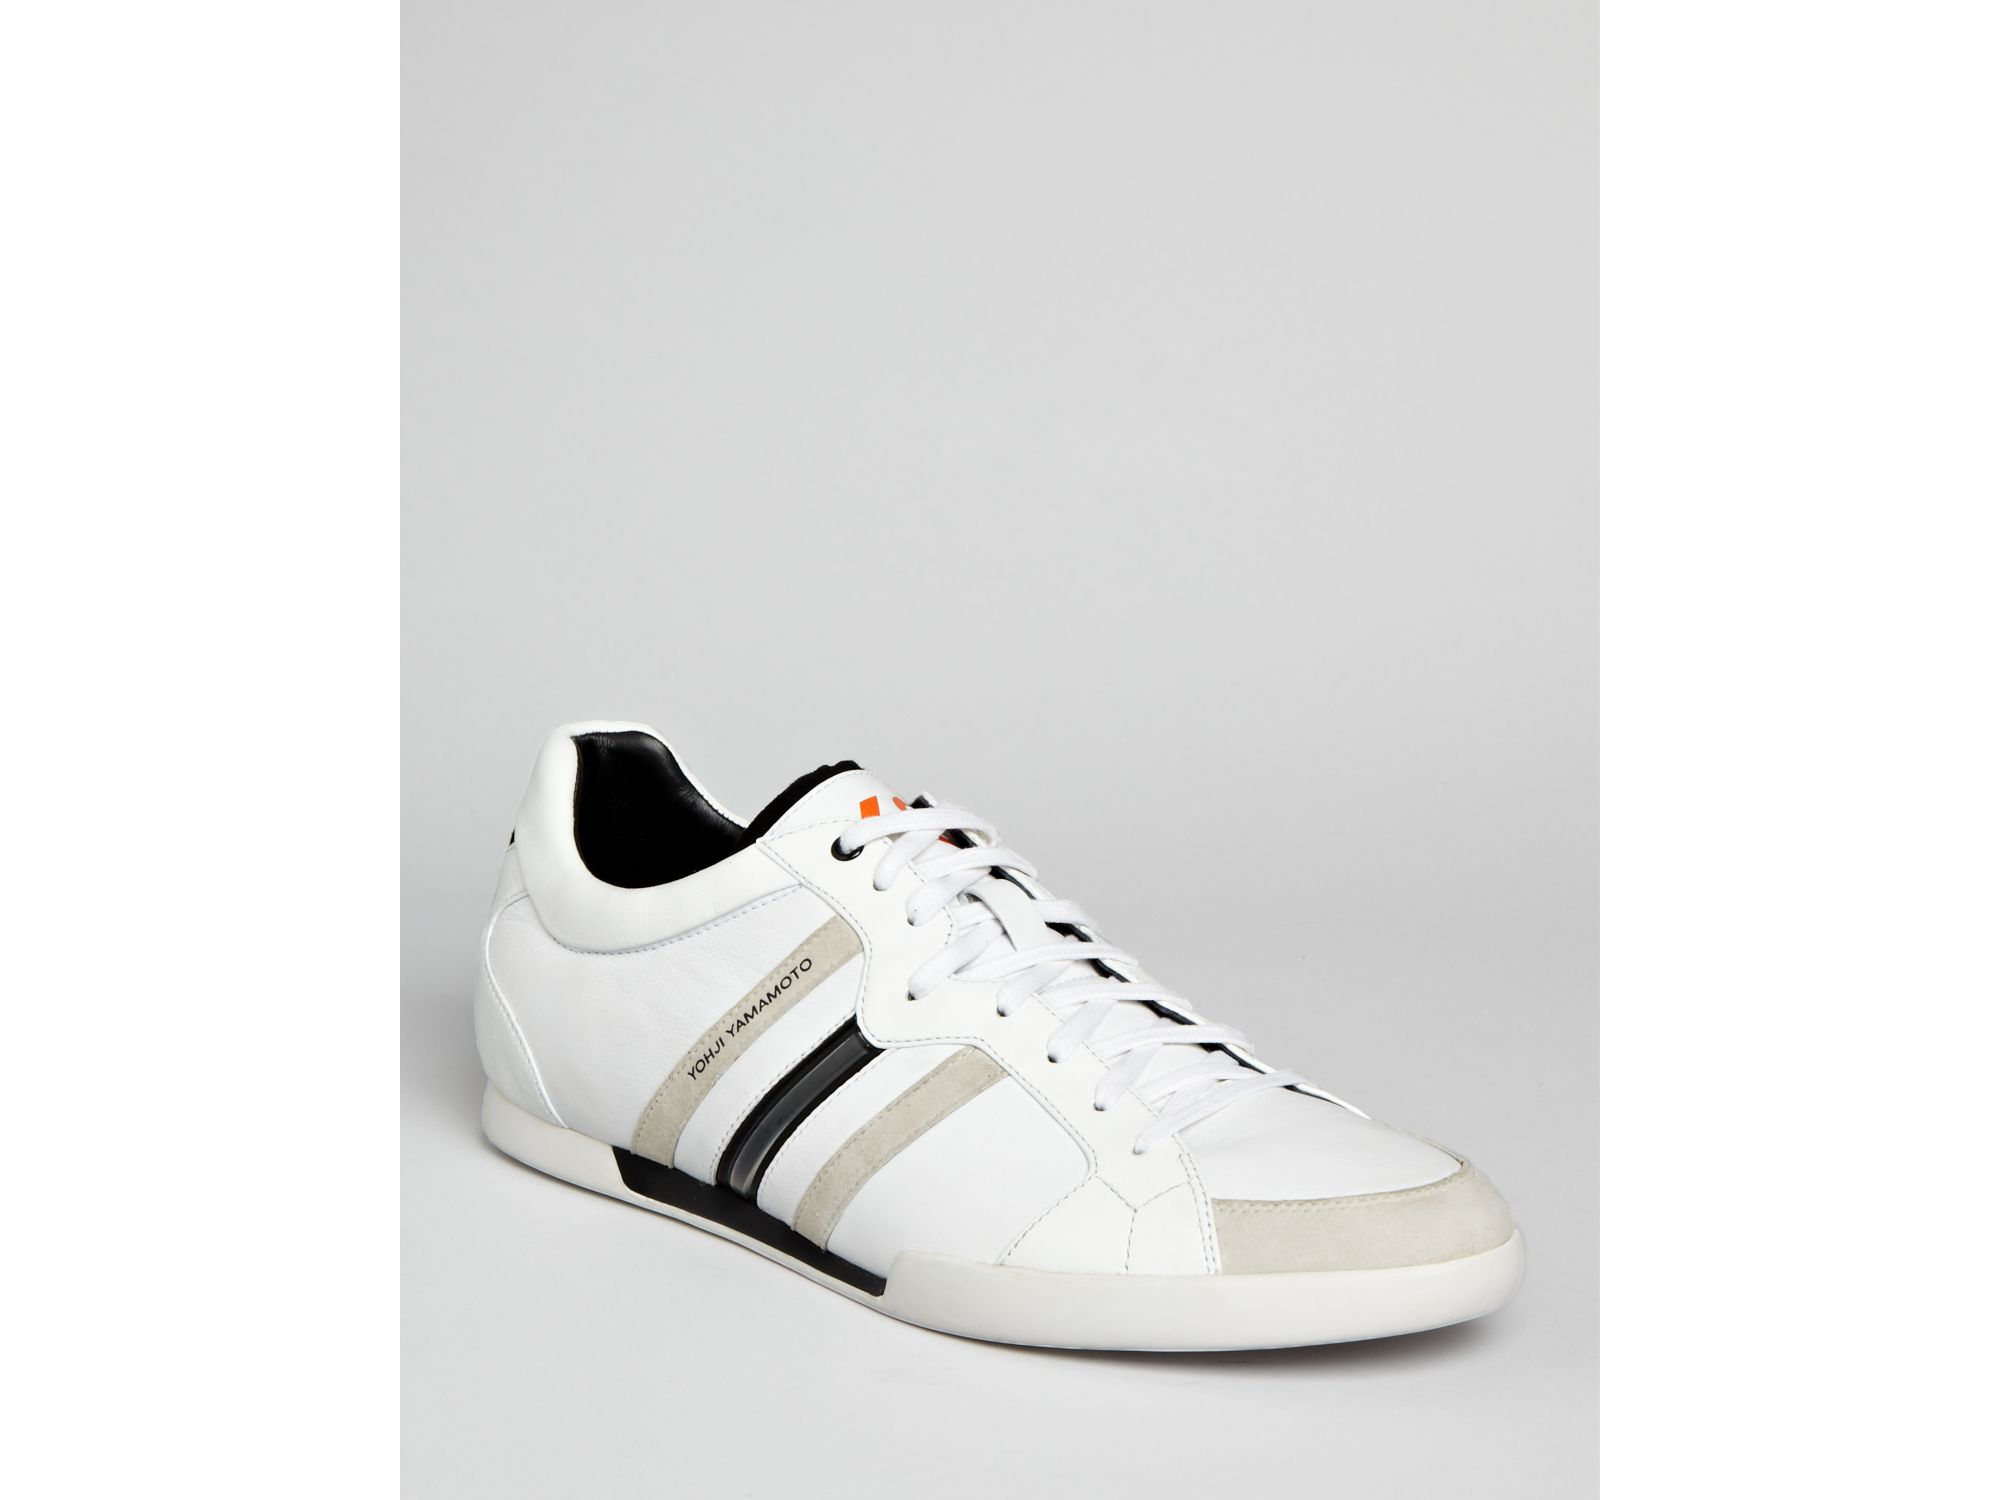 5d544c0f9 Lyst - Y-3 Sala Classic Sneakers in White for Men